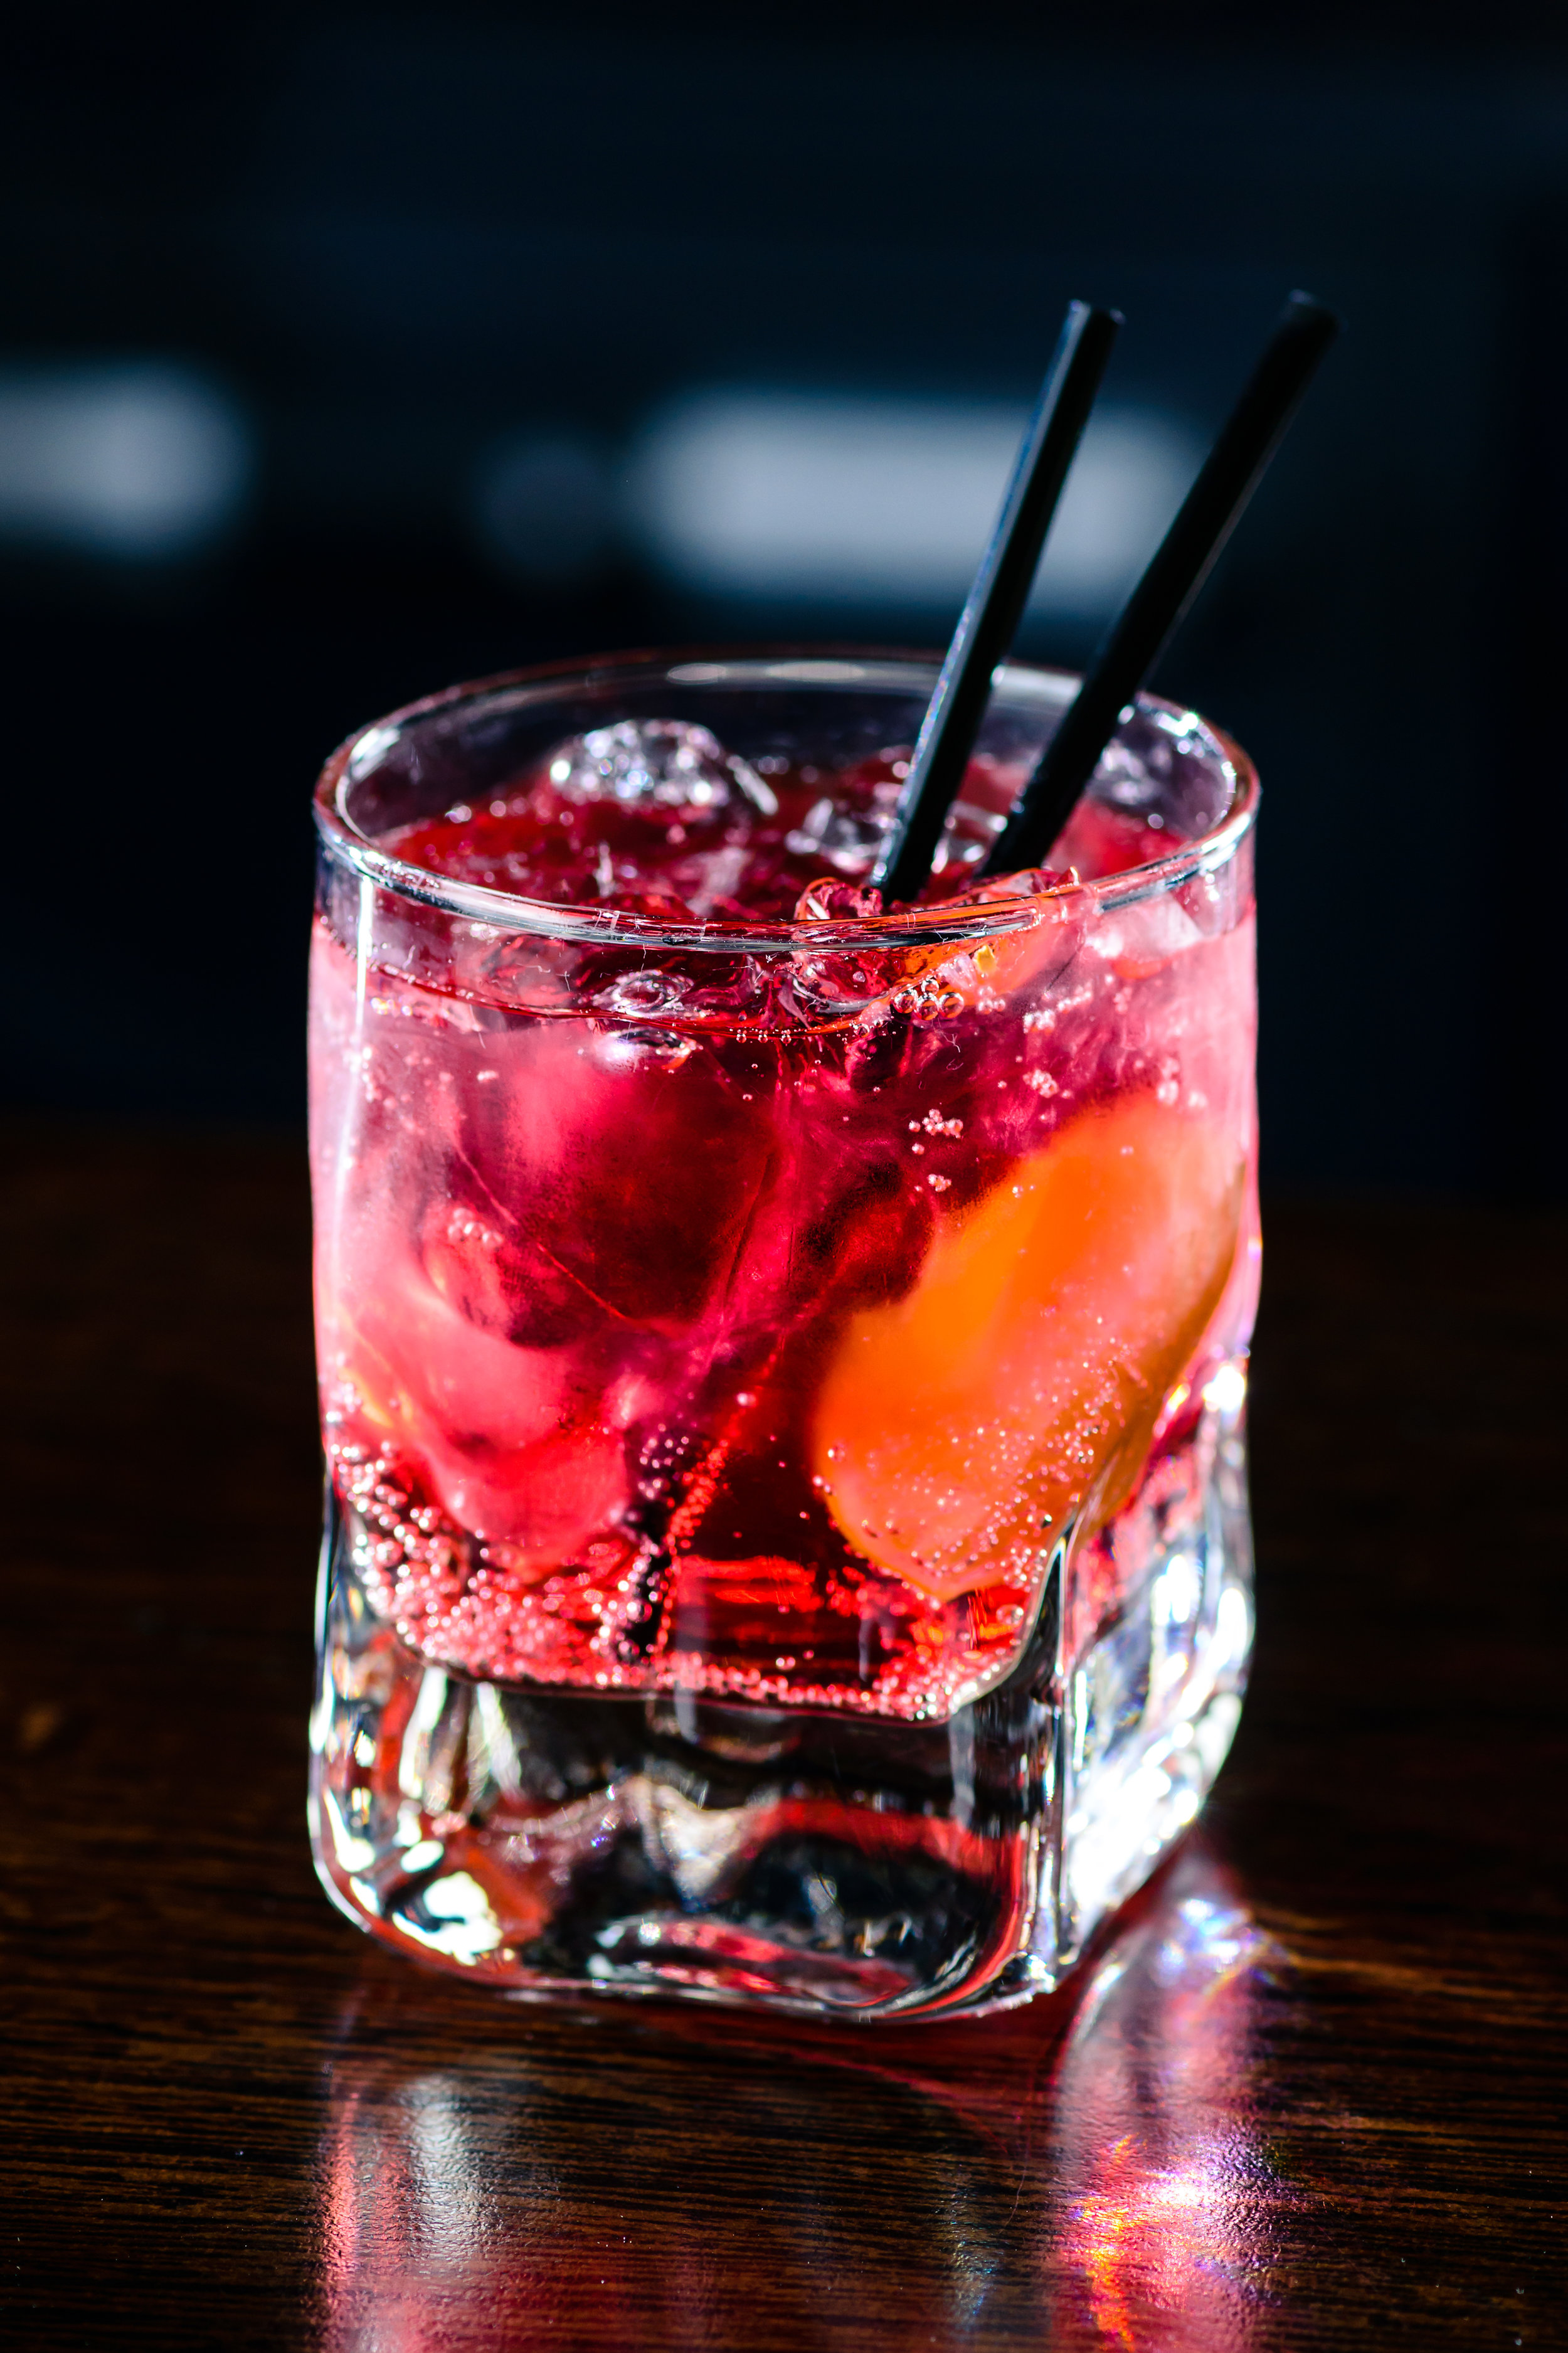 Bubbly Bouquet - 1 oz. Fords Gin, 1 oz. lemon juice, 75 oz. Aperol and   .25 Giffard's orgeat syrup.